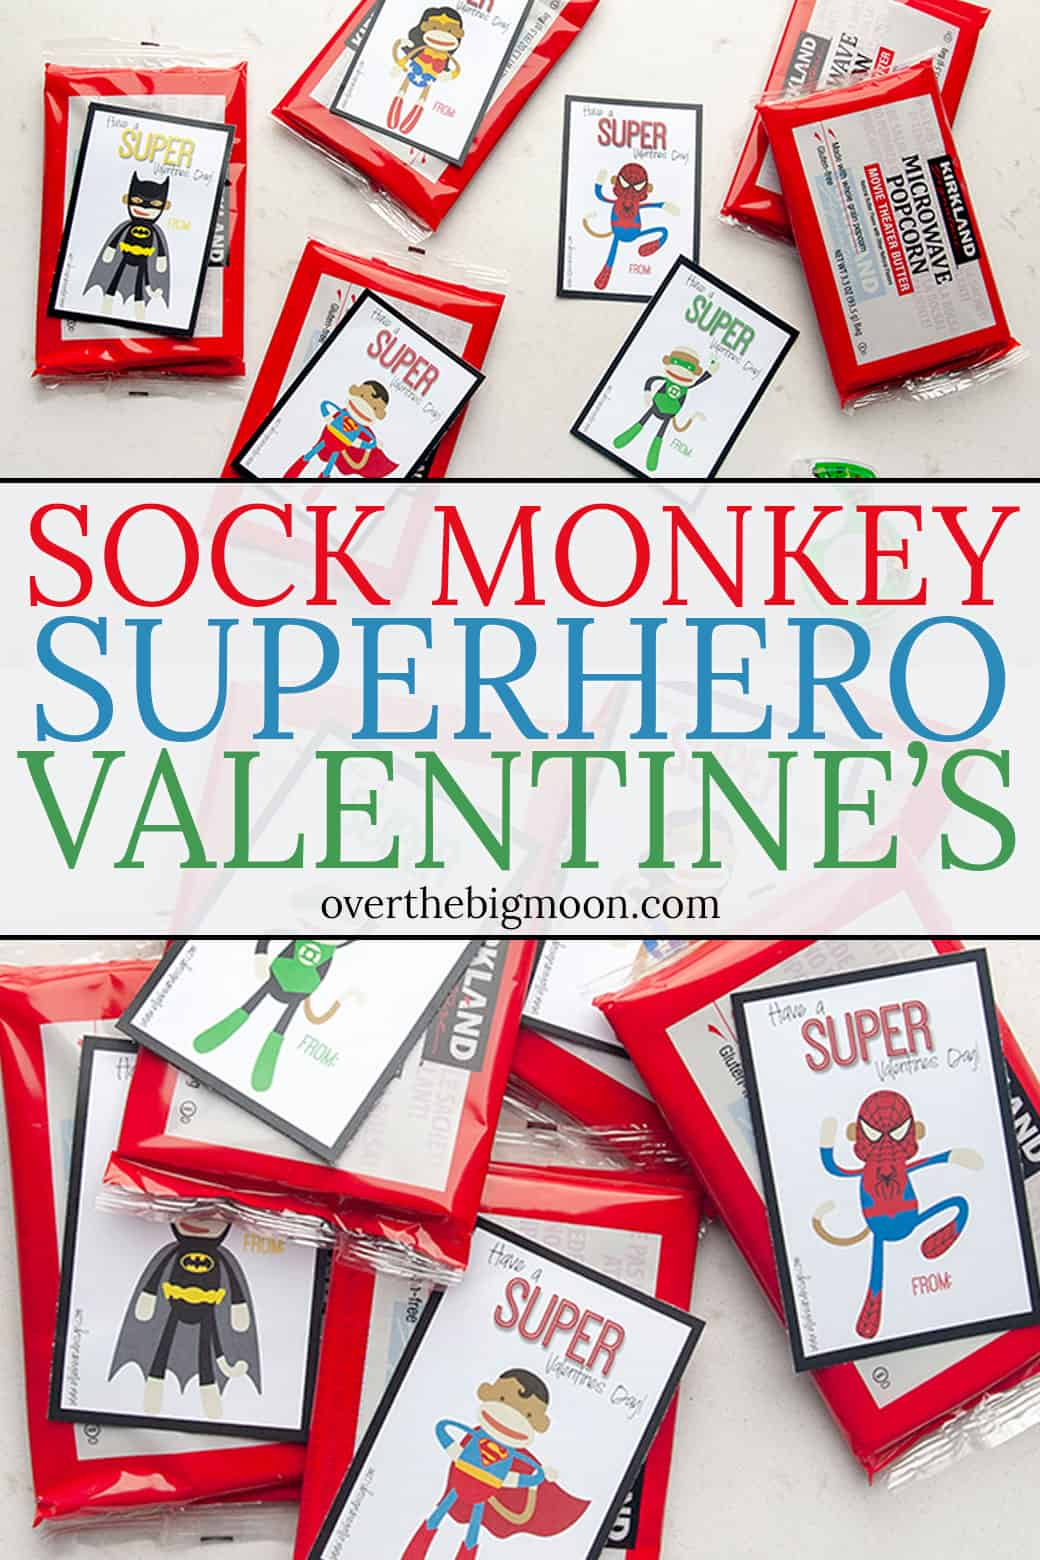 Sock Monkey Superhero Printable Valentine's - just print and attach to whatever treat you want! They make a fun and unique Valentine! From overthebigmoon.com!